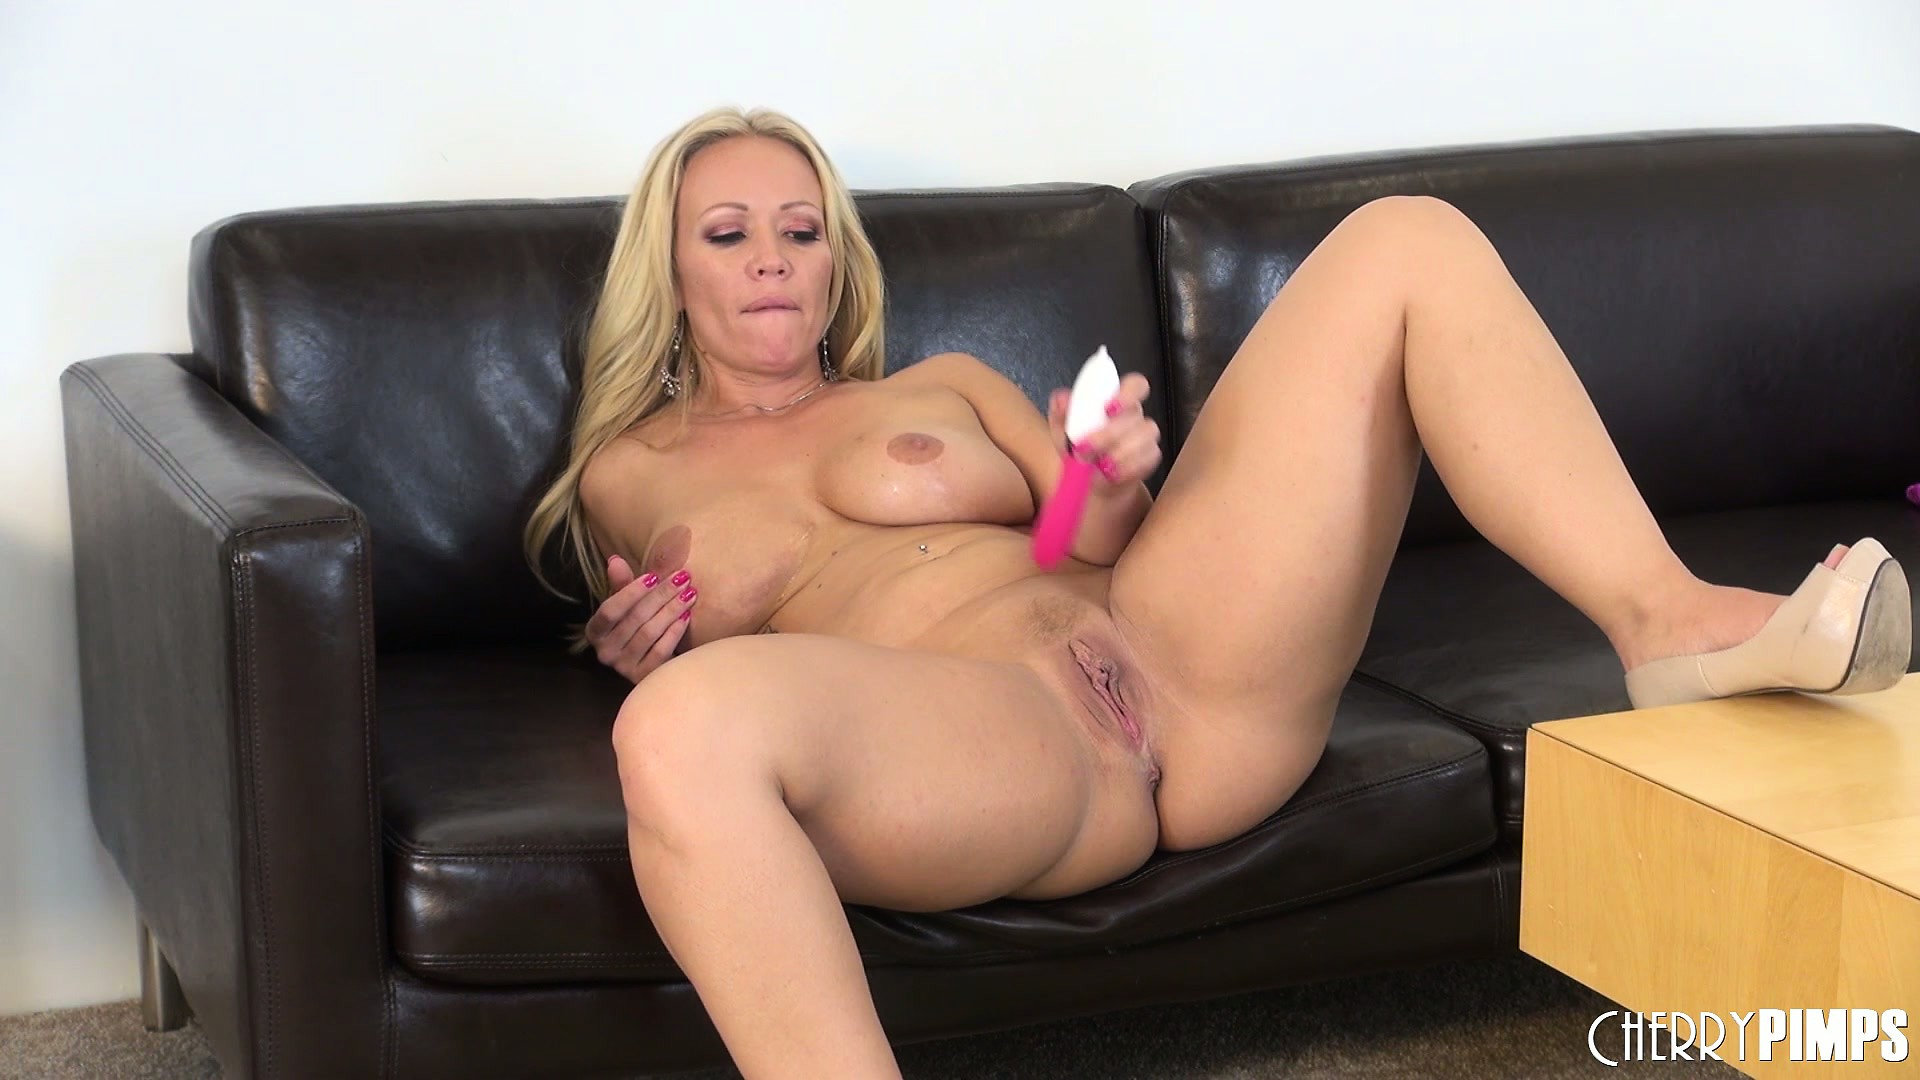 Porno Video of Ultimate Blonde Mom, Austin Taylor Puts On The Ultimate Solo Show